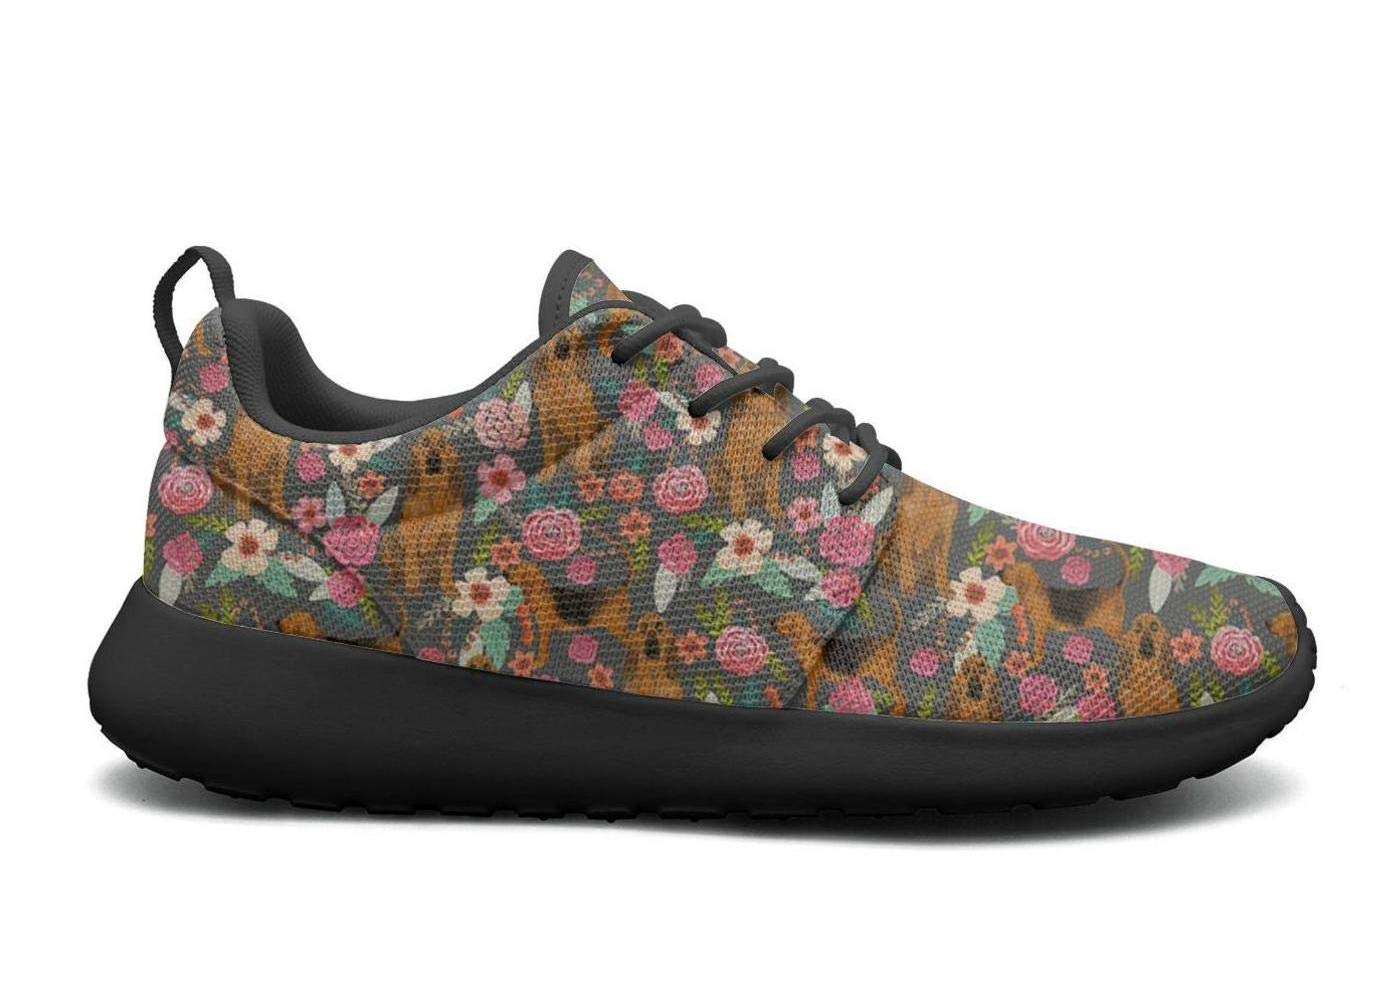 FEWW11 Women Cool Lightweight Shoes Sneakers Cute Airedale Terrier Dog Florals Cozy Gym Lace-Up